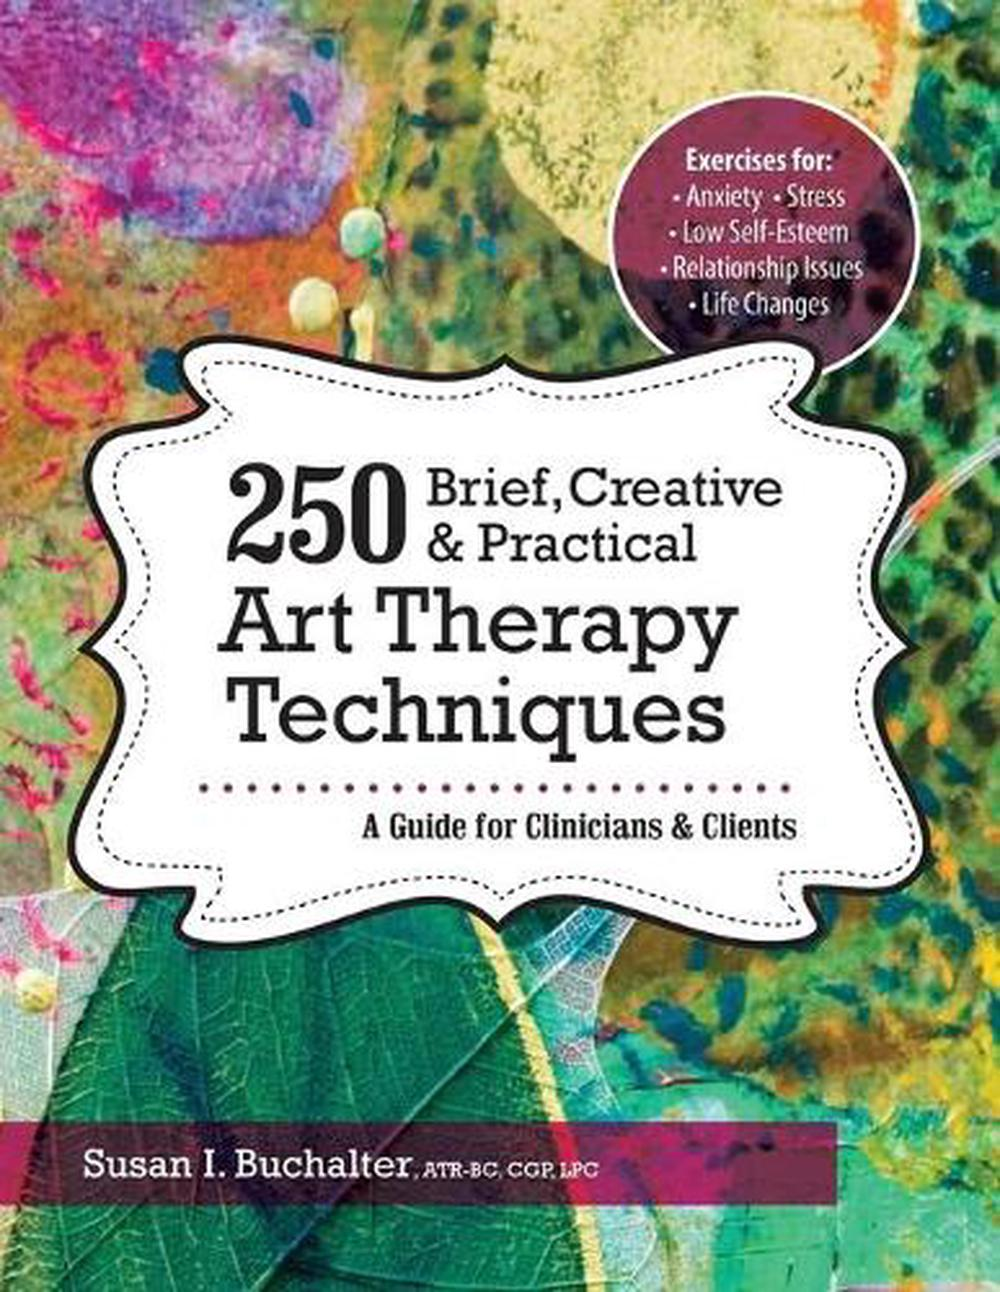 250 Brief, Creative & Practical Art Therapy TechniquesA Guide for Clinicians & Clients